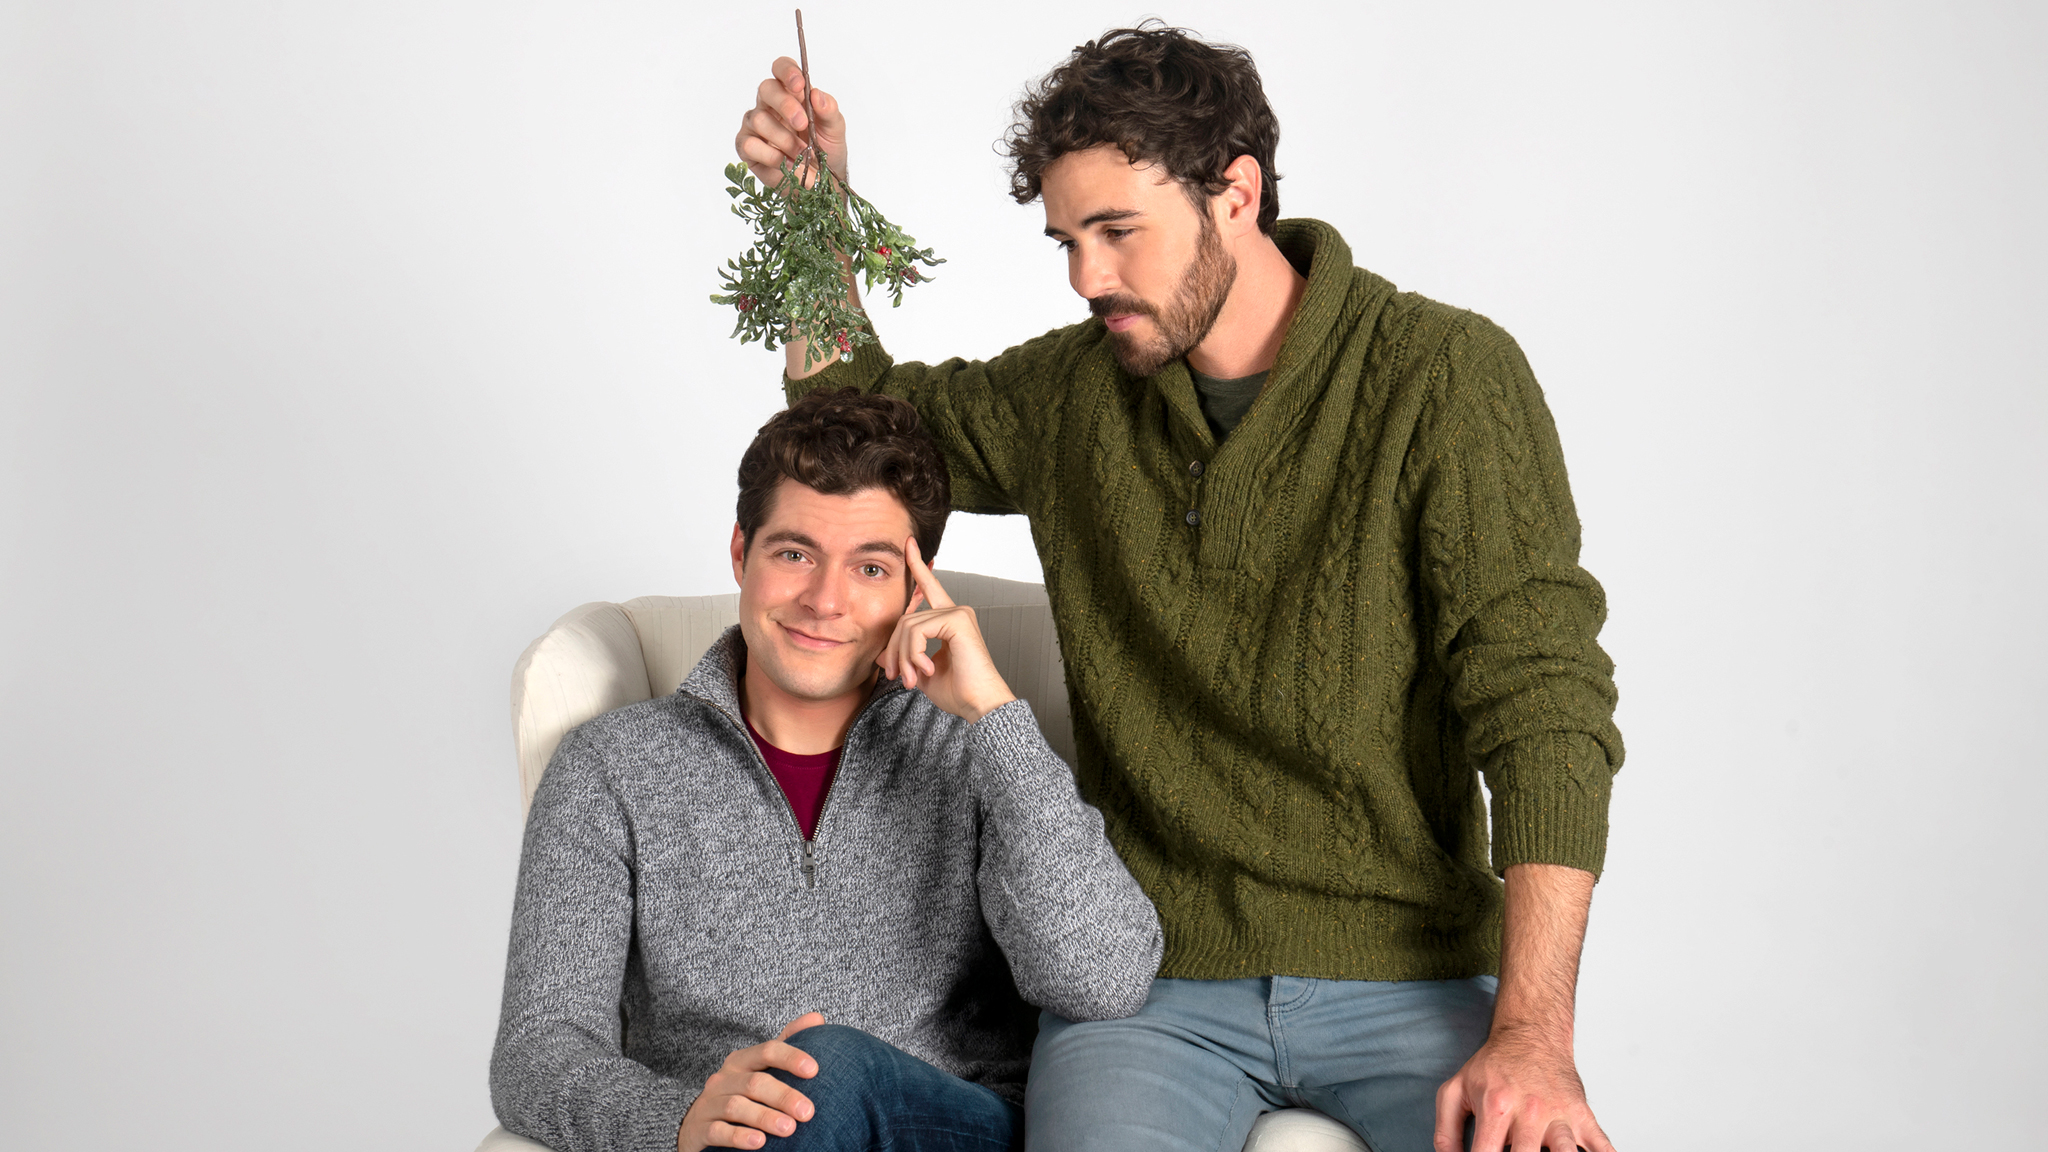 Ben Lewis and Blake Lee from Lifetime's 'The Christmas Setup' pose with mistletoe